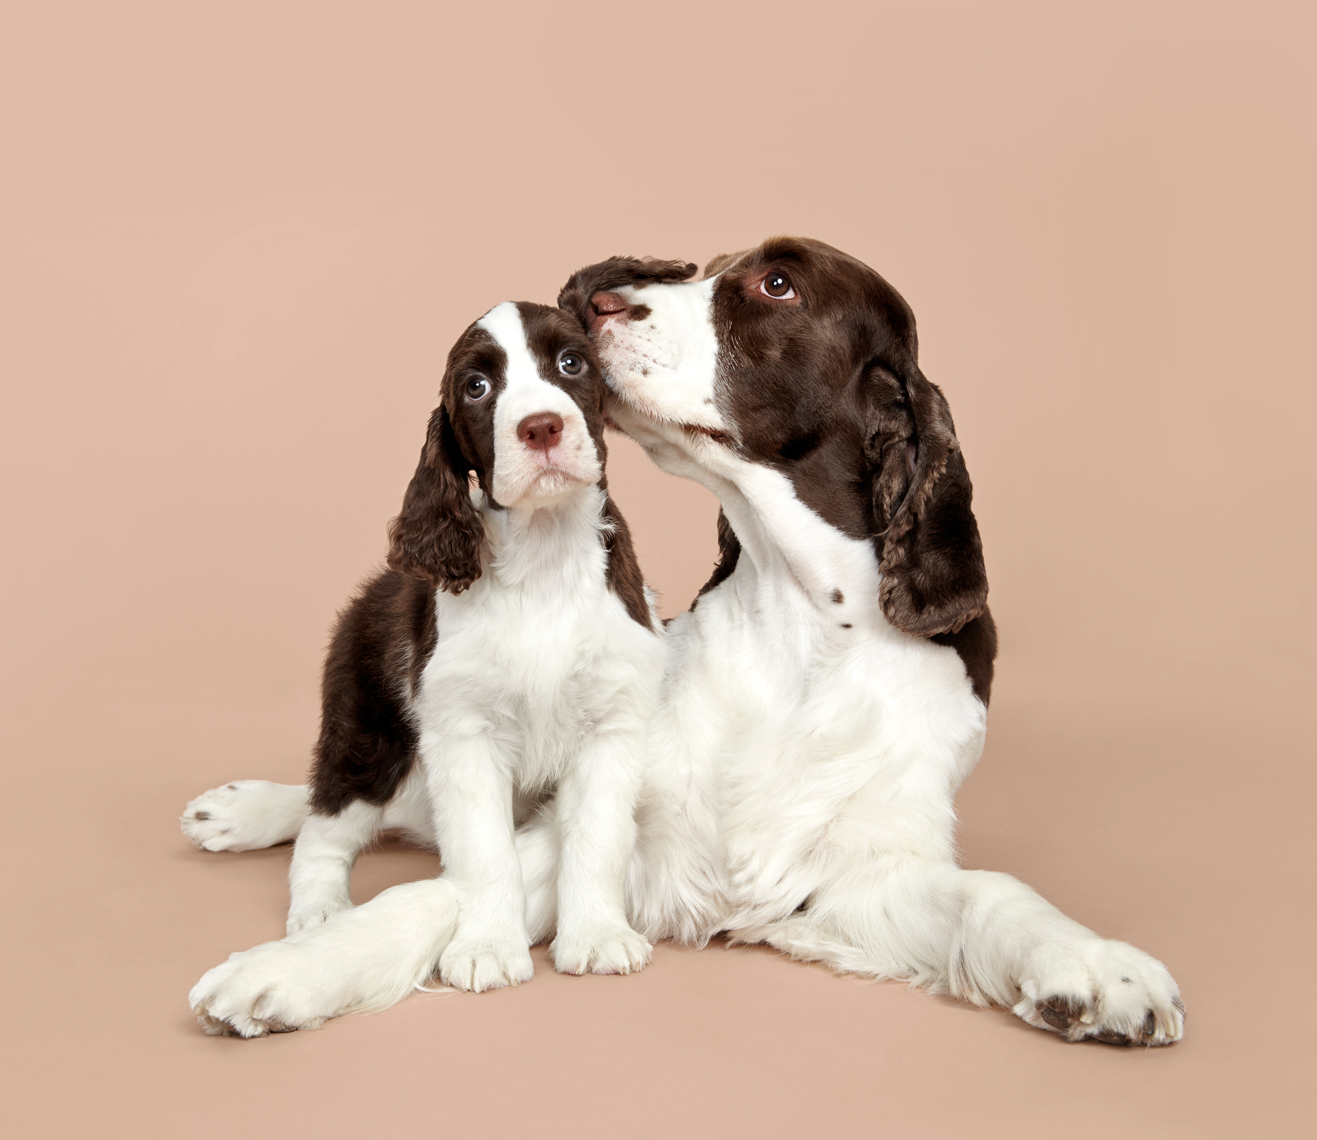 Springer Spaniel dog and puppy